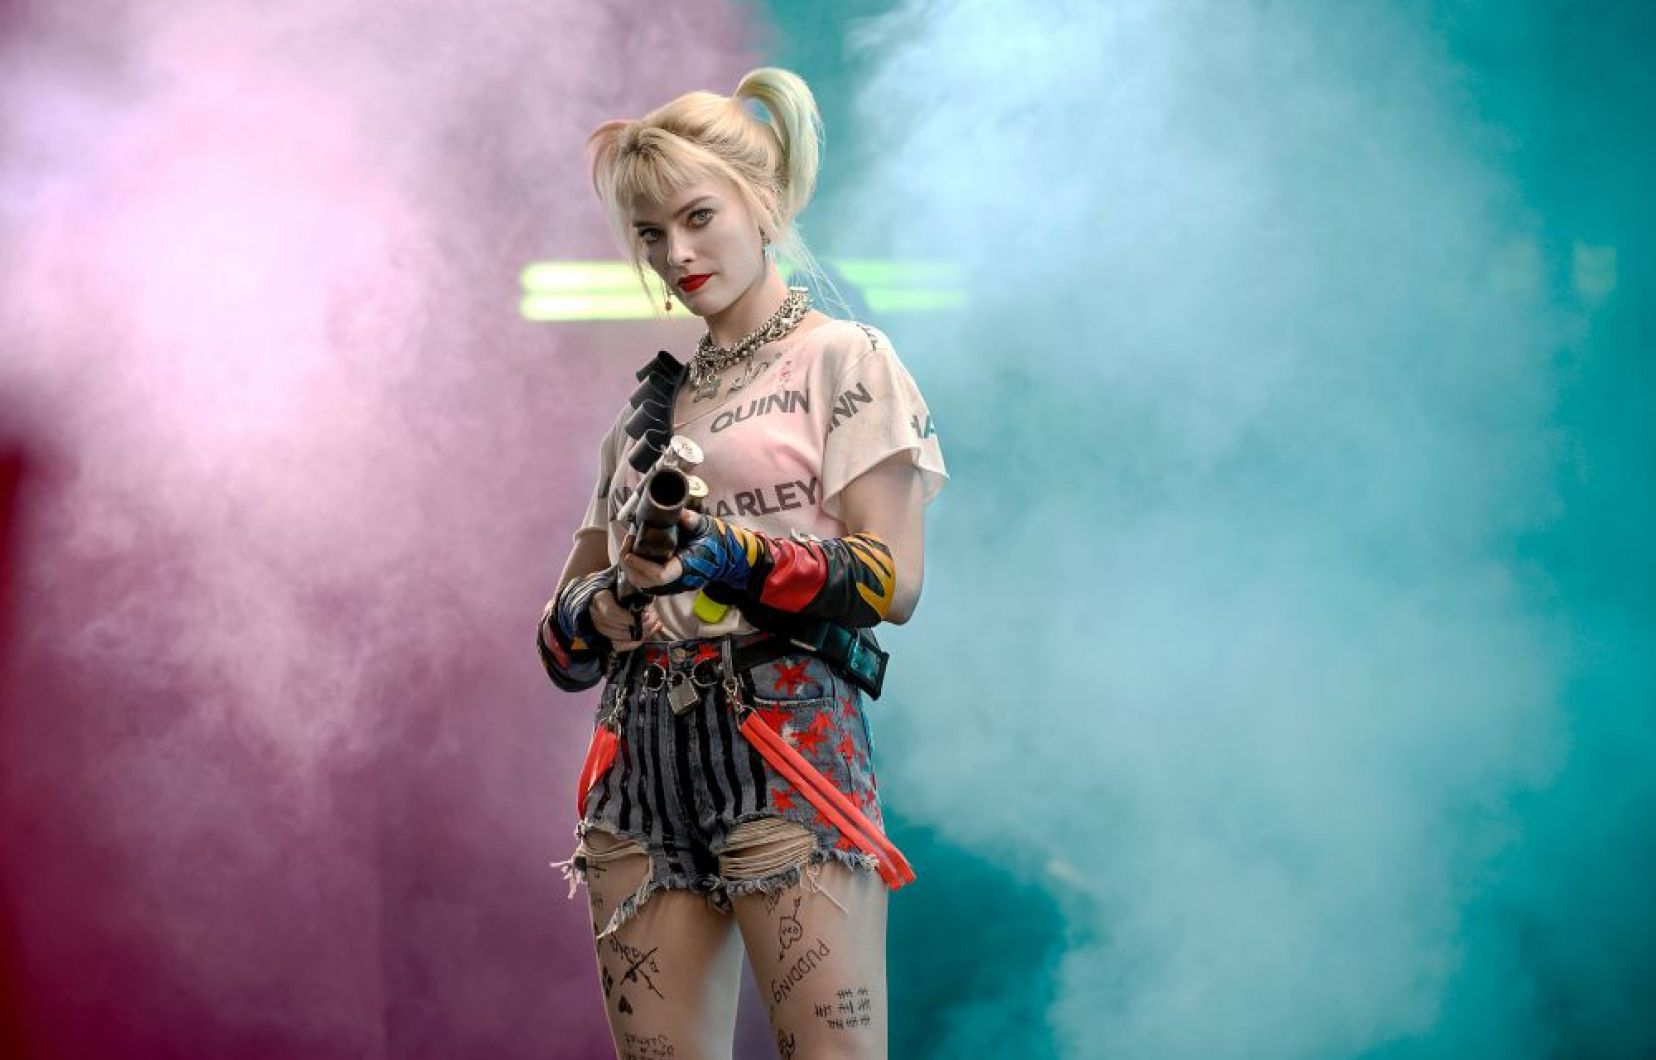 Harley Quinn (Margot Robbie) in Birds of Prey and the Fantabulous Emancipation of One Harley Quinn (2020)